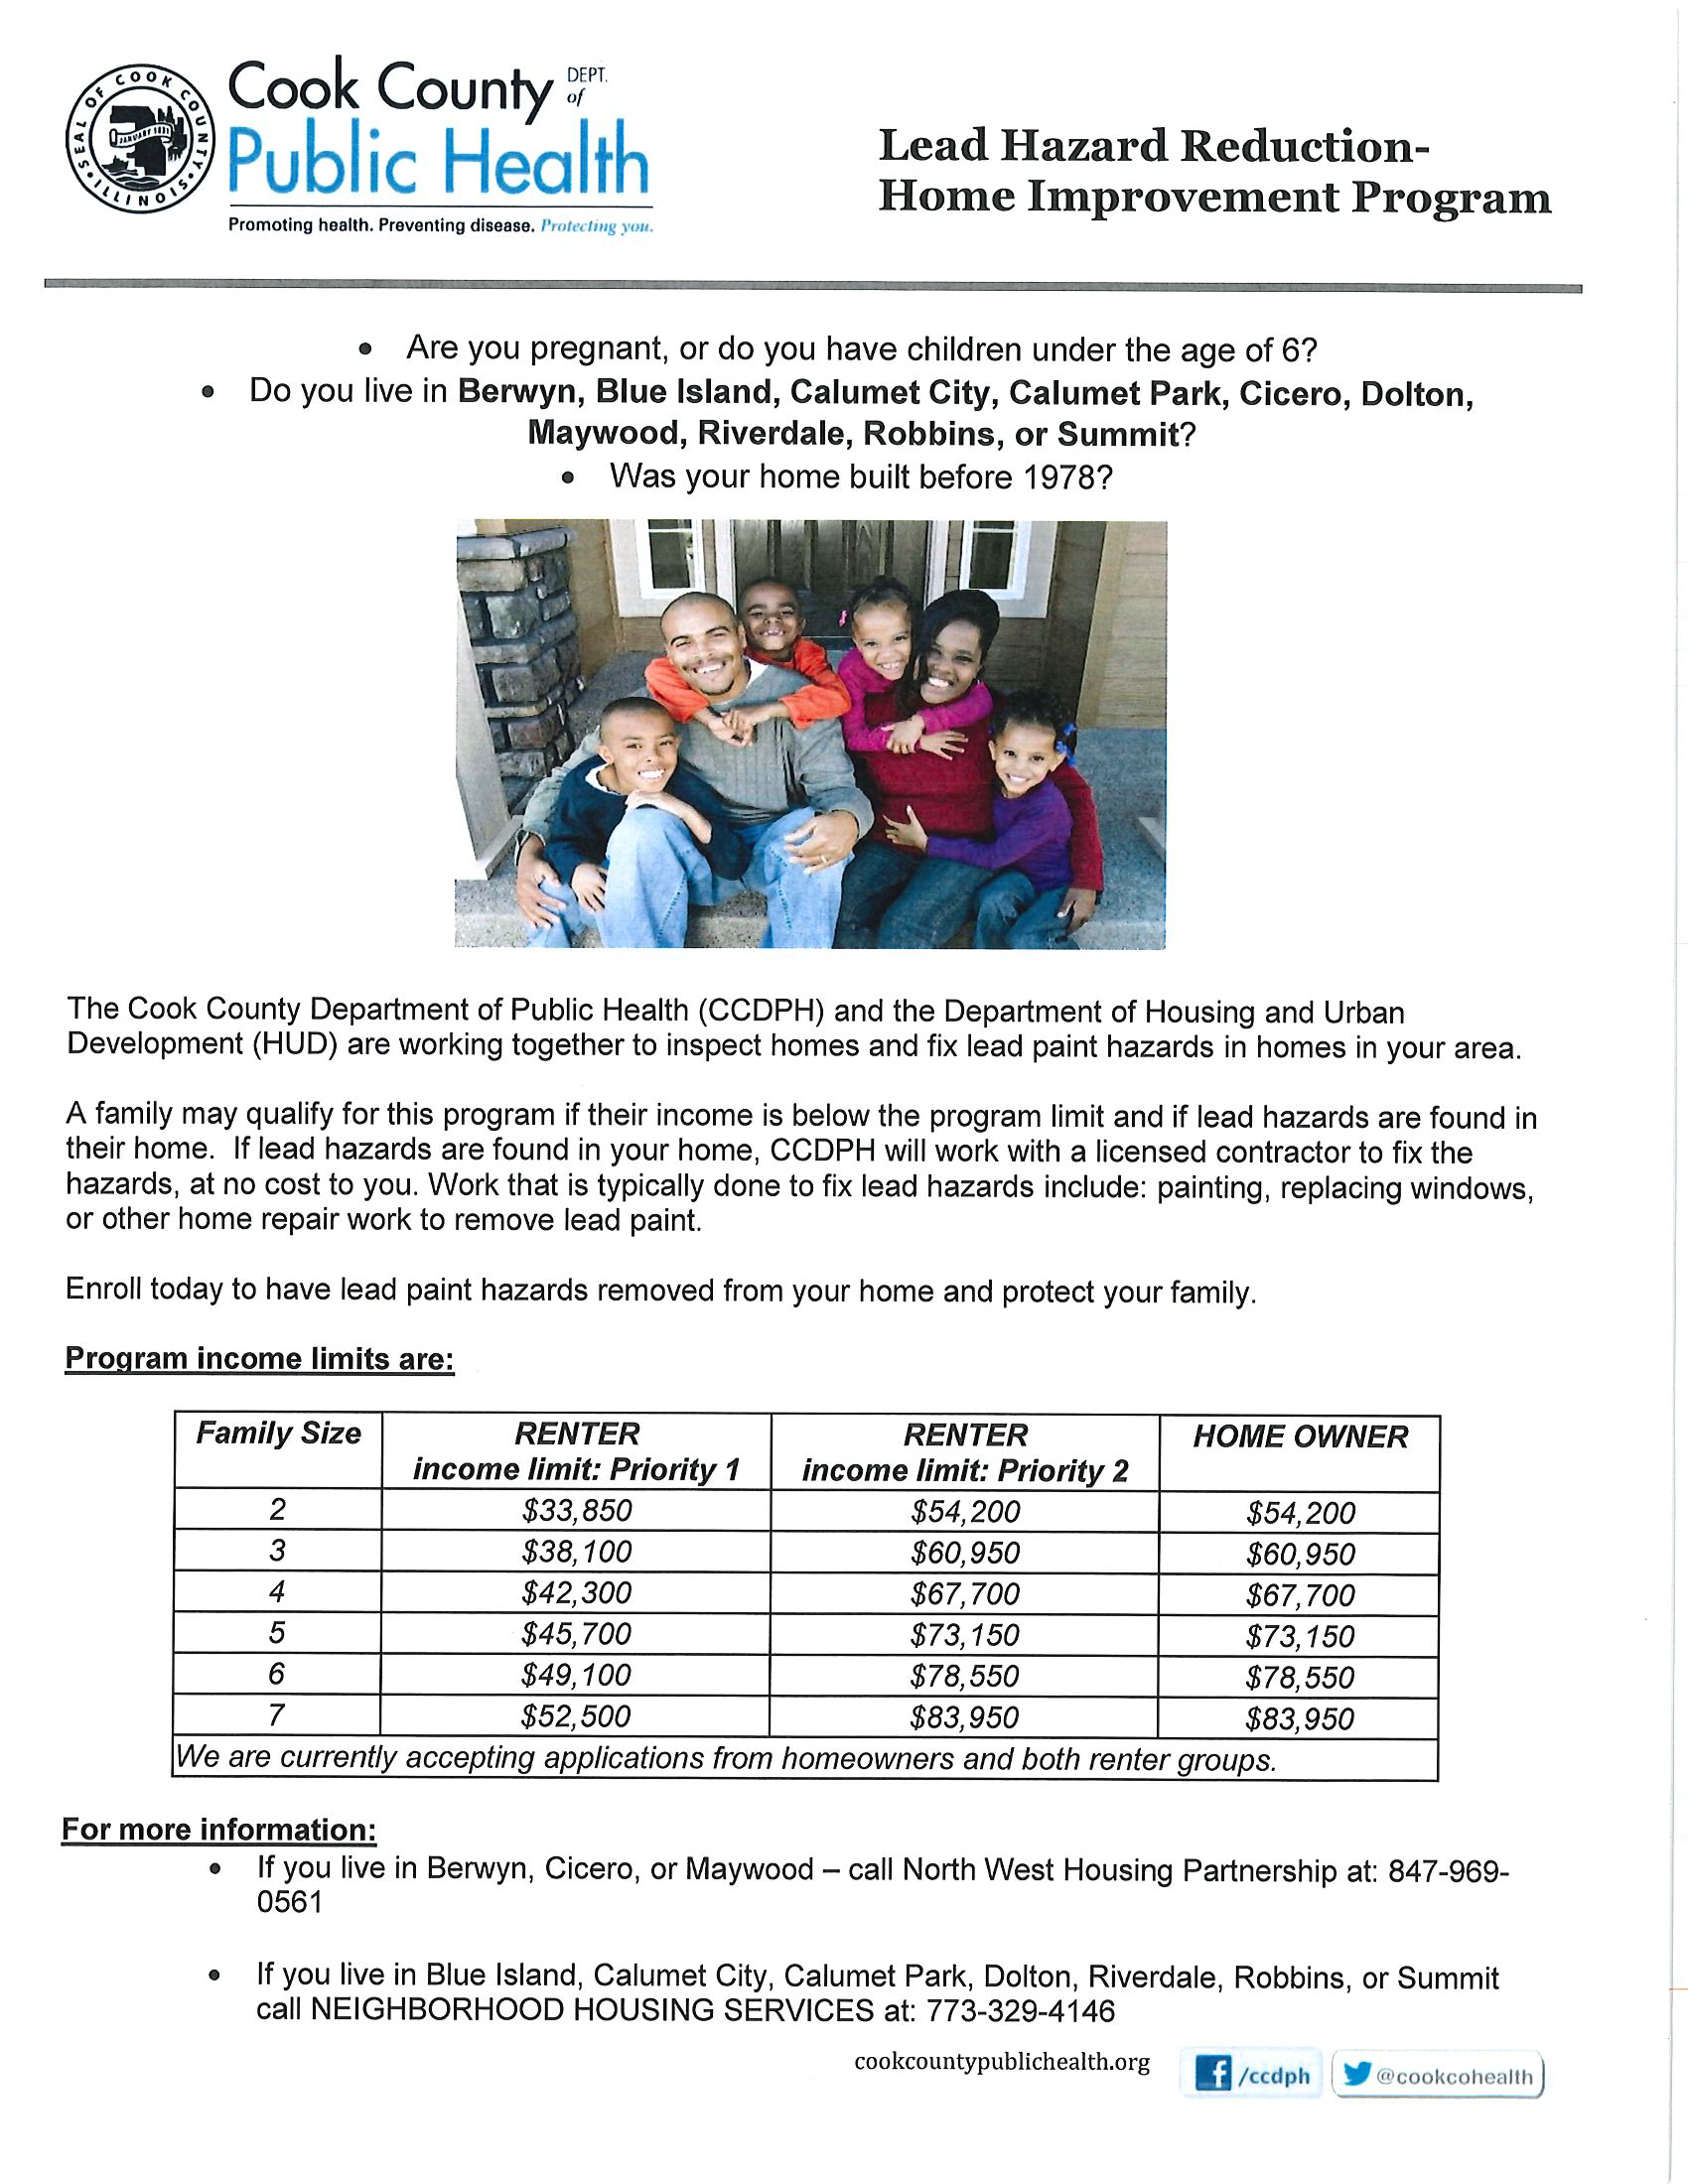 Cook County Lead home improvement program Flyer